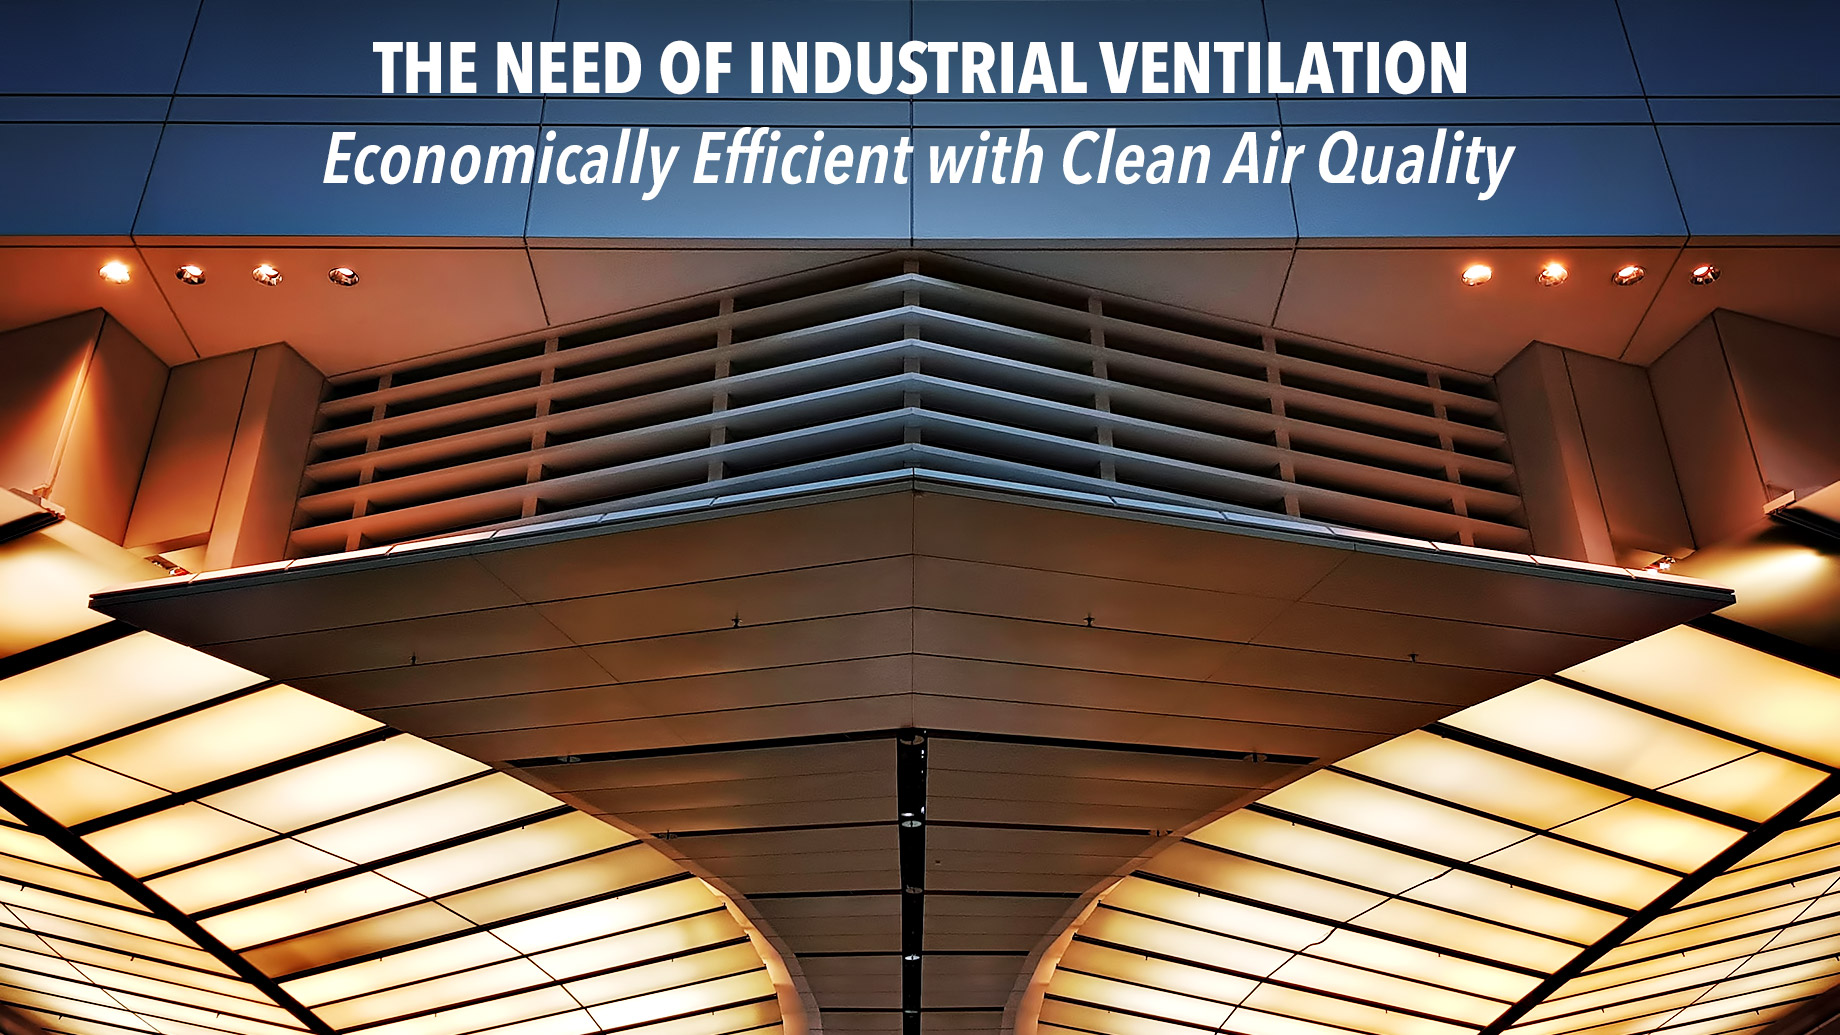 The Need of Industrial Ventilation - Economically Efficient with Clean Air Quality